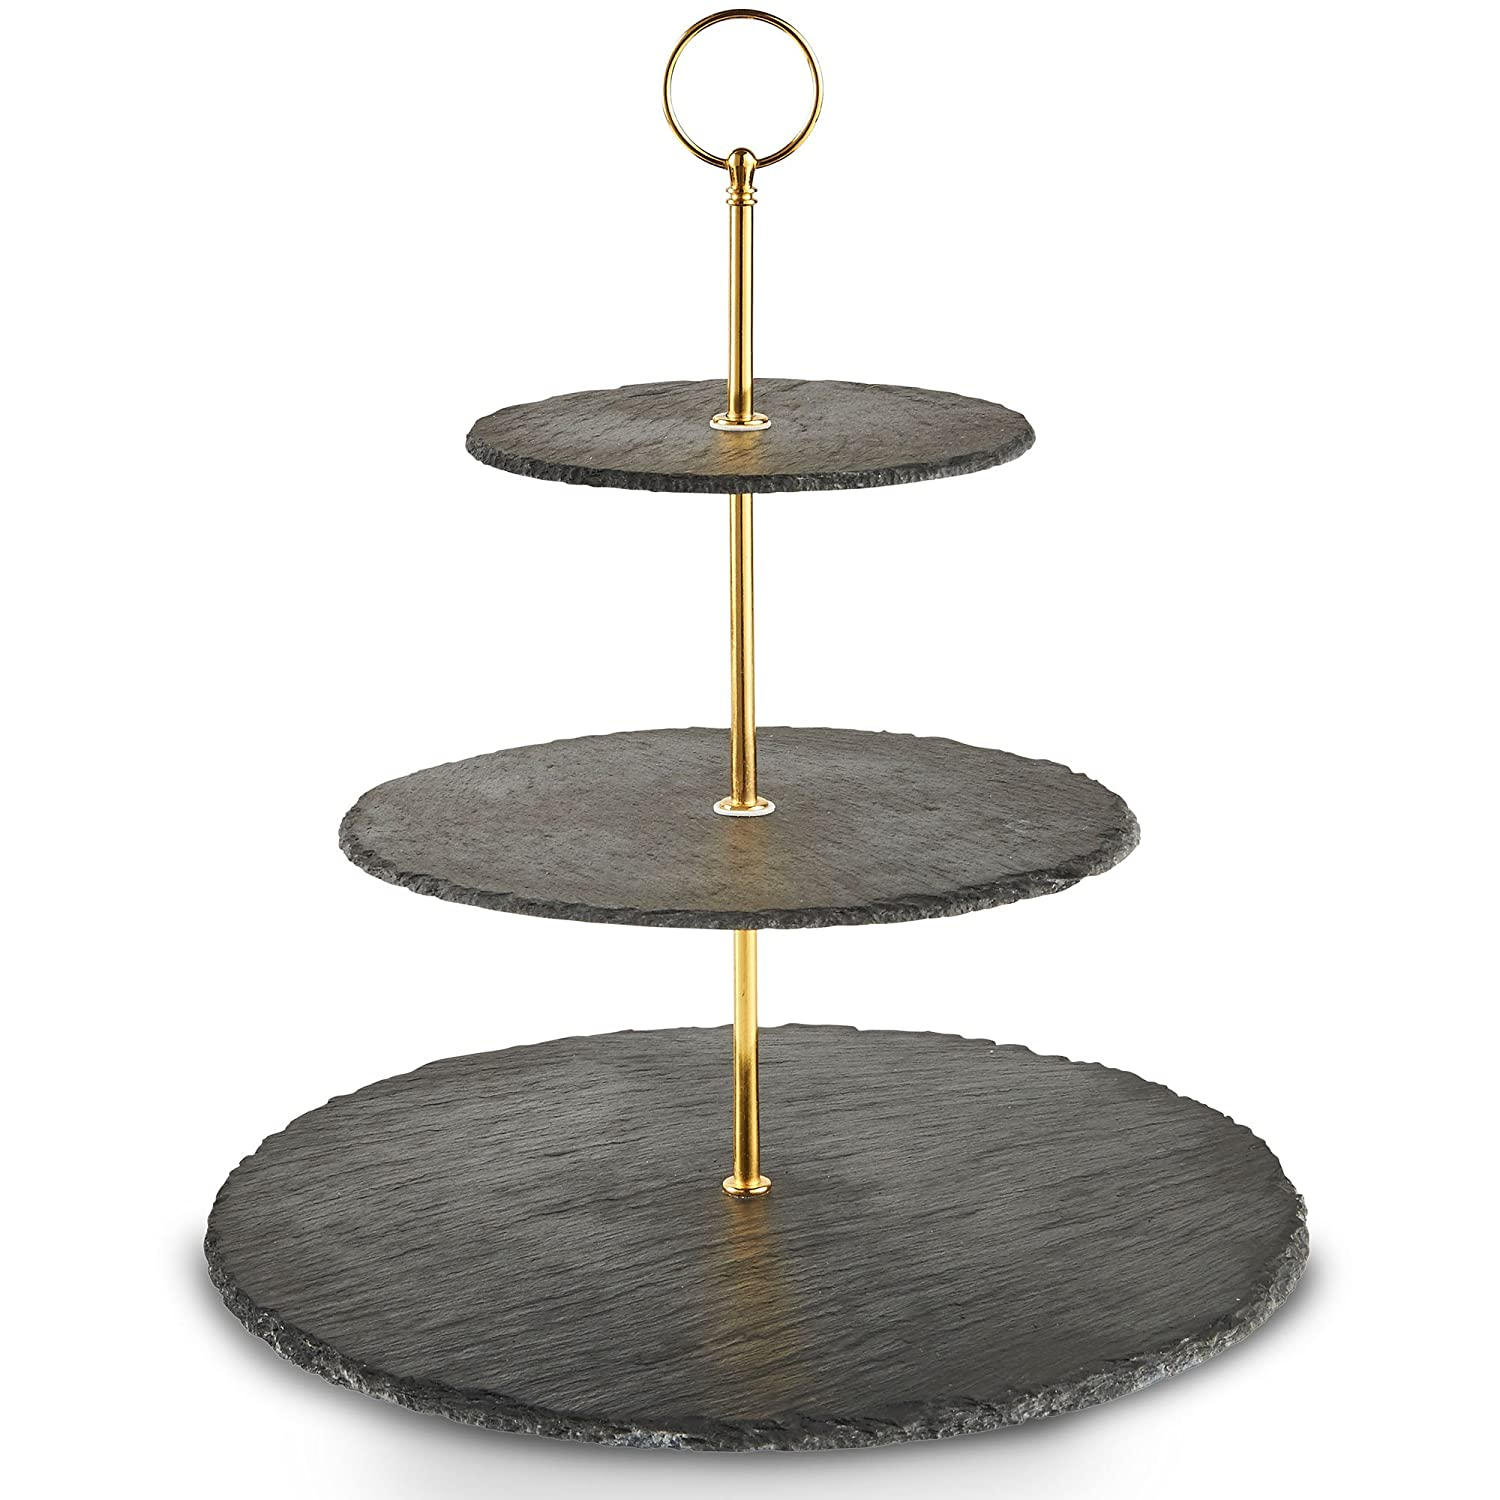 VonShef 3 Tier Round Cake Stand Natural Slate with Carry Handle